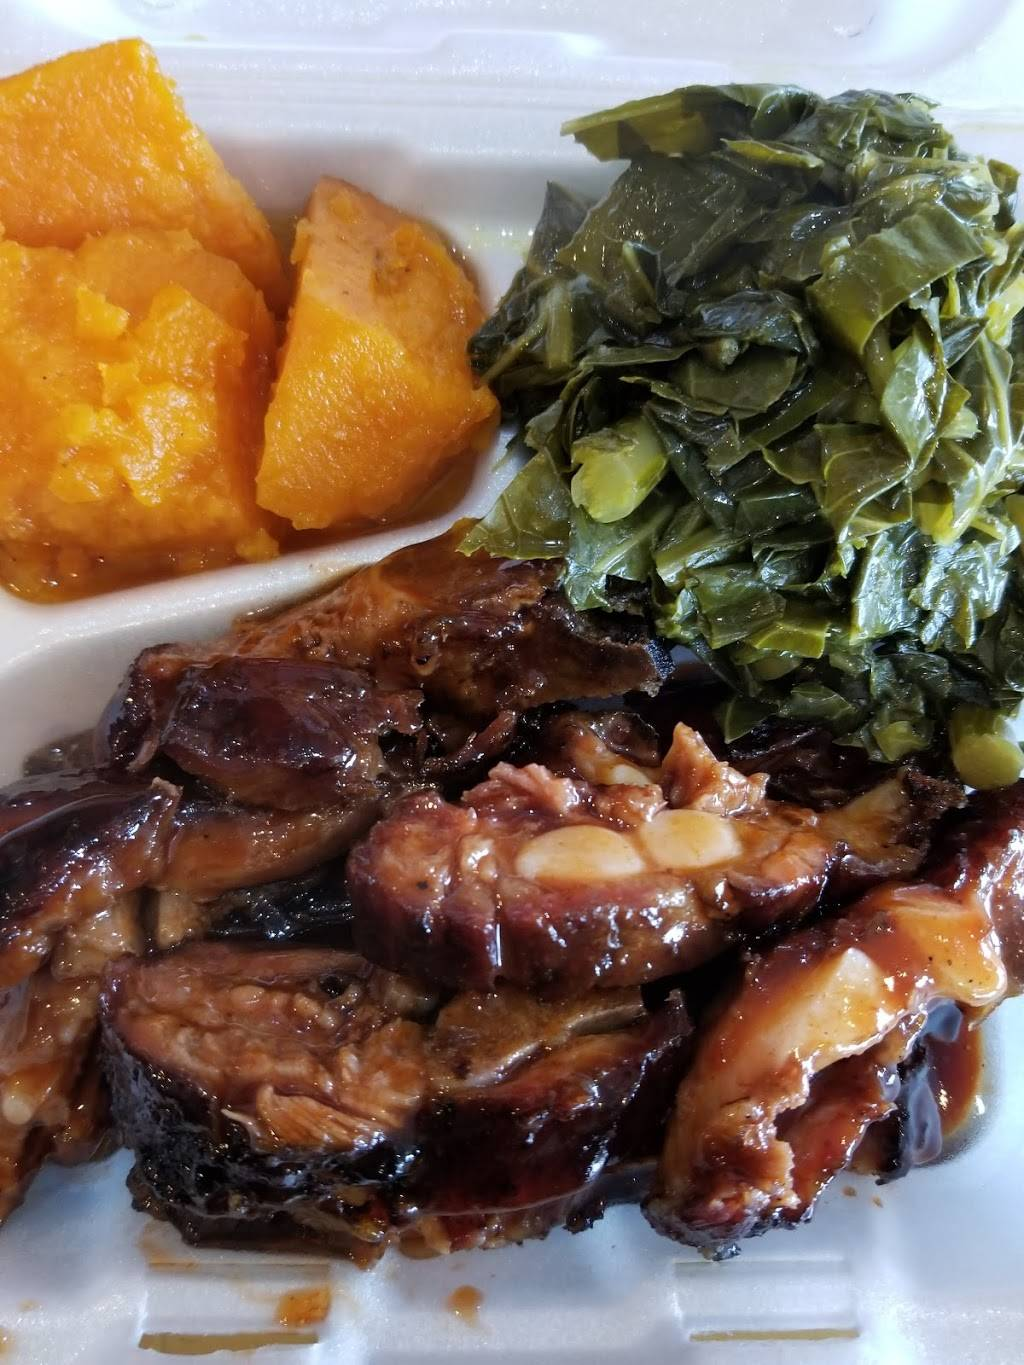 Kennys Ribs and Dusties Restaurant | restaurant | 4269 167th Street, Country Club Hills, IL, Country Club Hills, IL 60478, USA | 7087994199 OR +1 708-799-4199